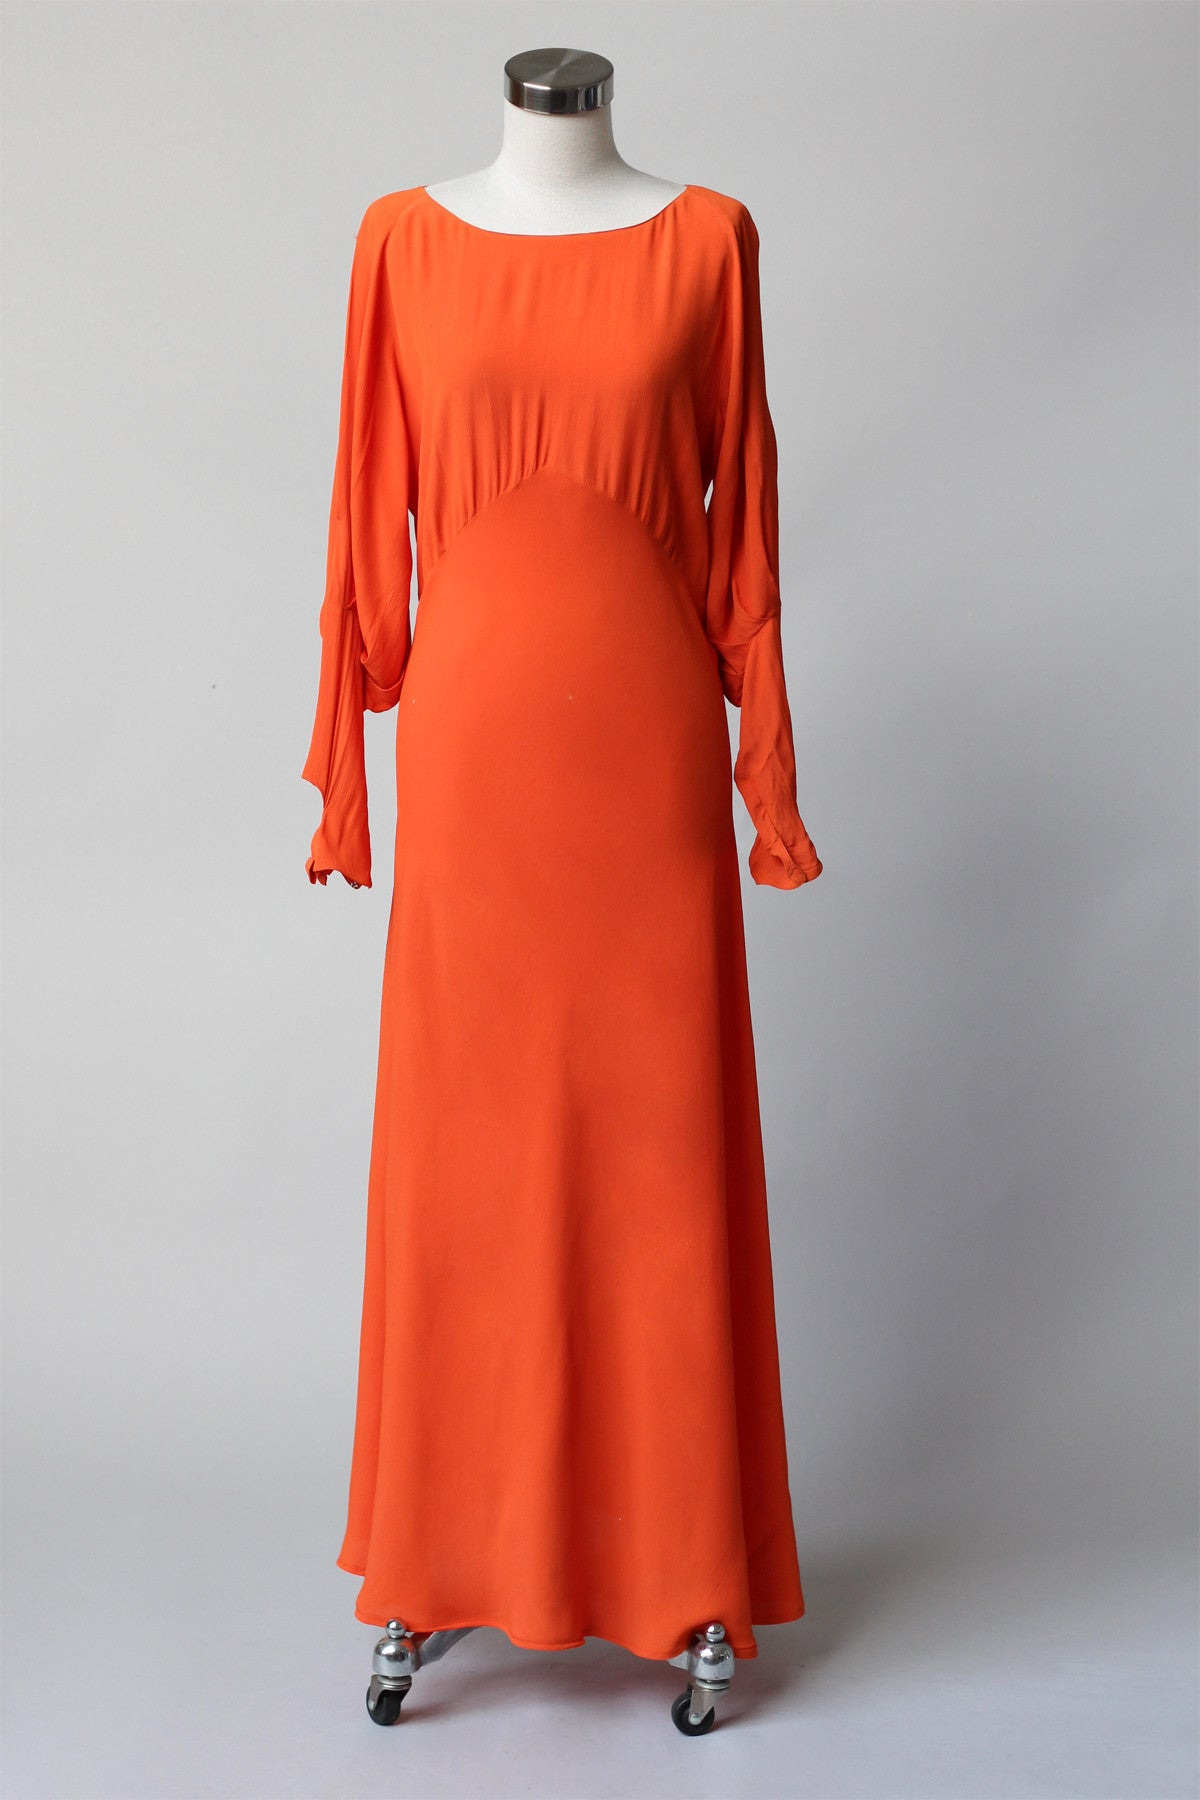 Late 1920s Early 1930s Silk Crepe Orange Gown ~ As Is – The ...